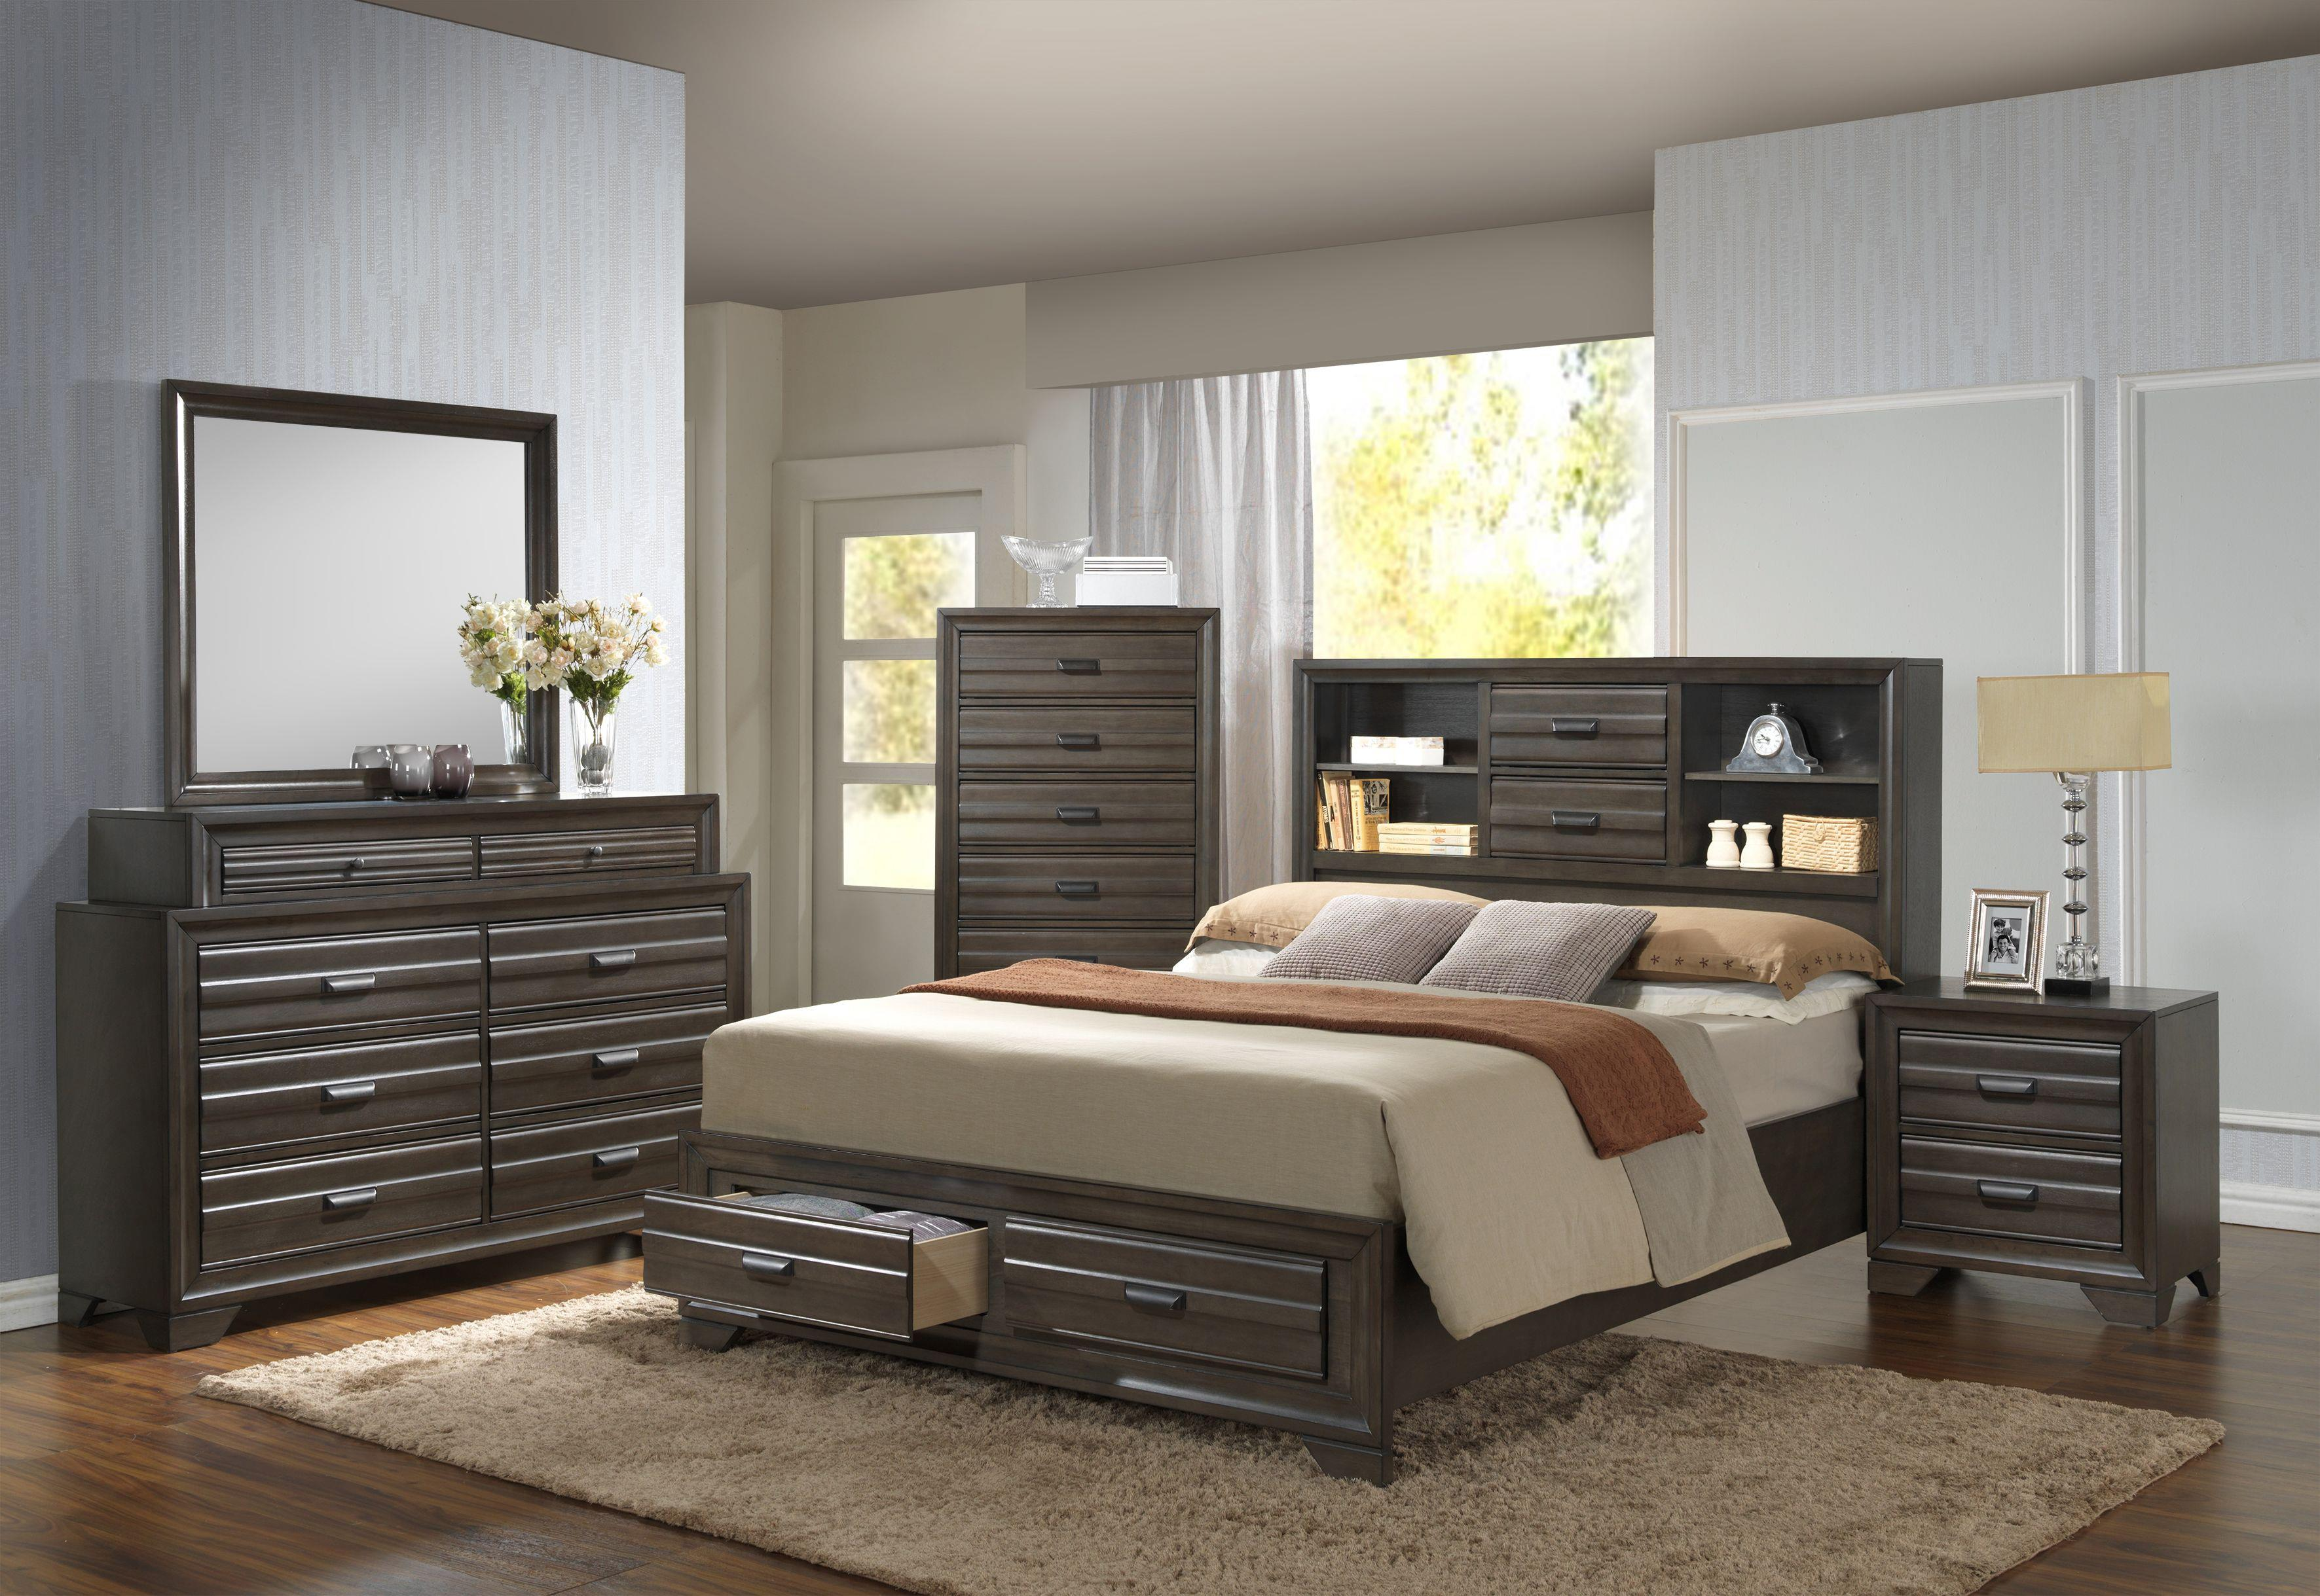 5236A Queen Storage Bed by Lifestyle at Beck's Furniture